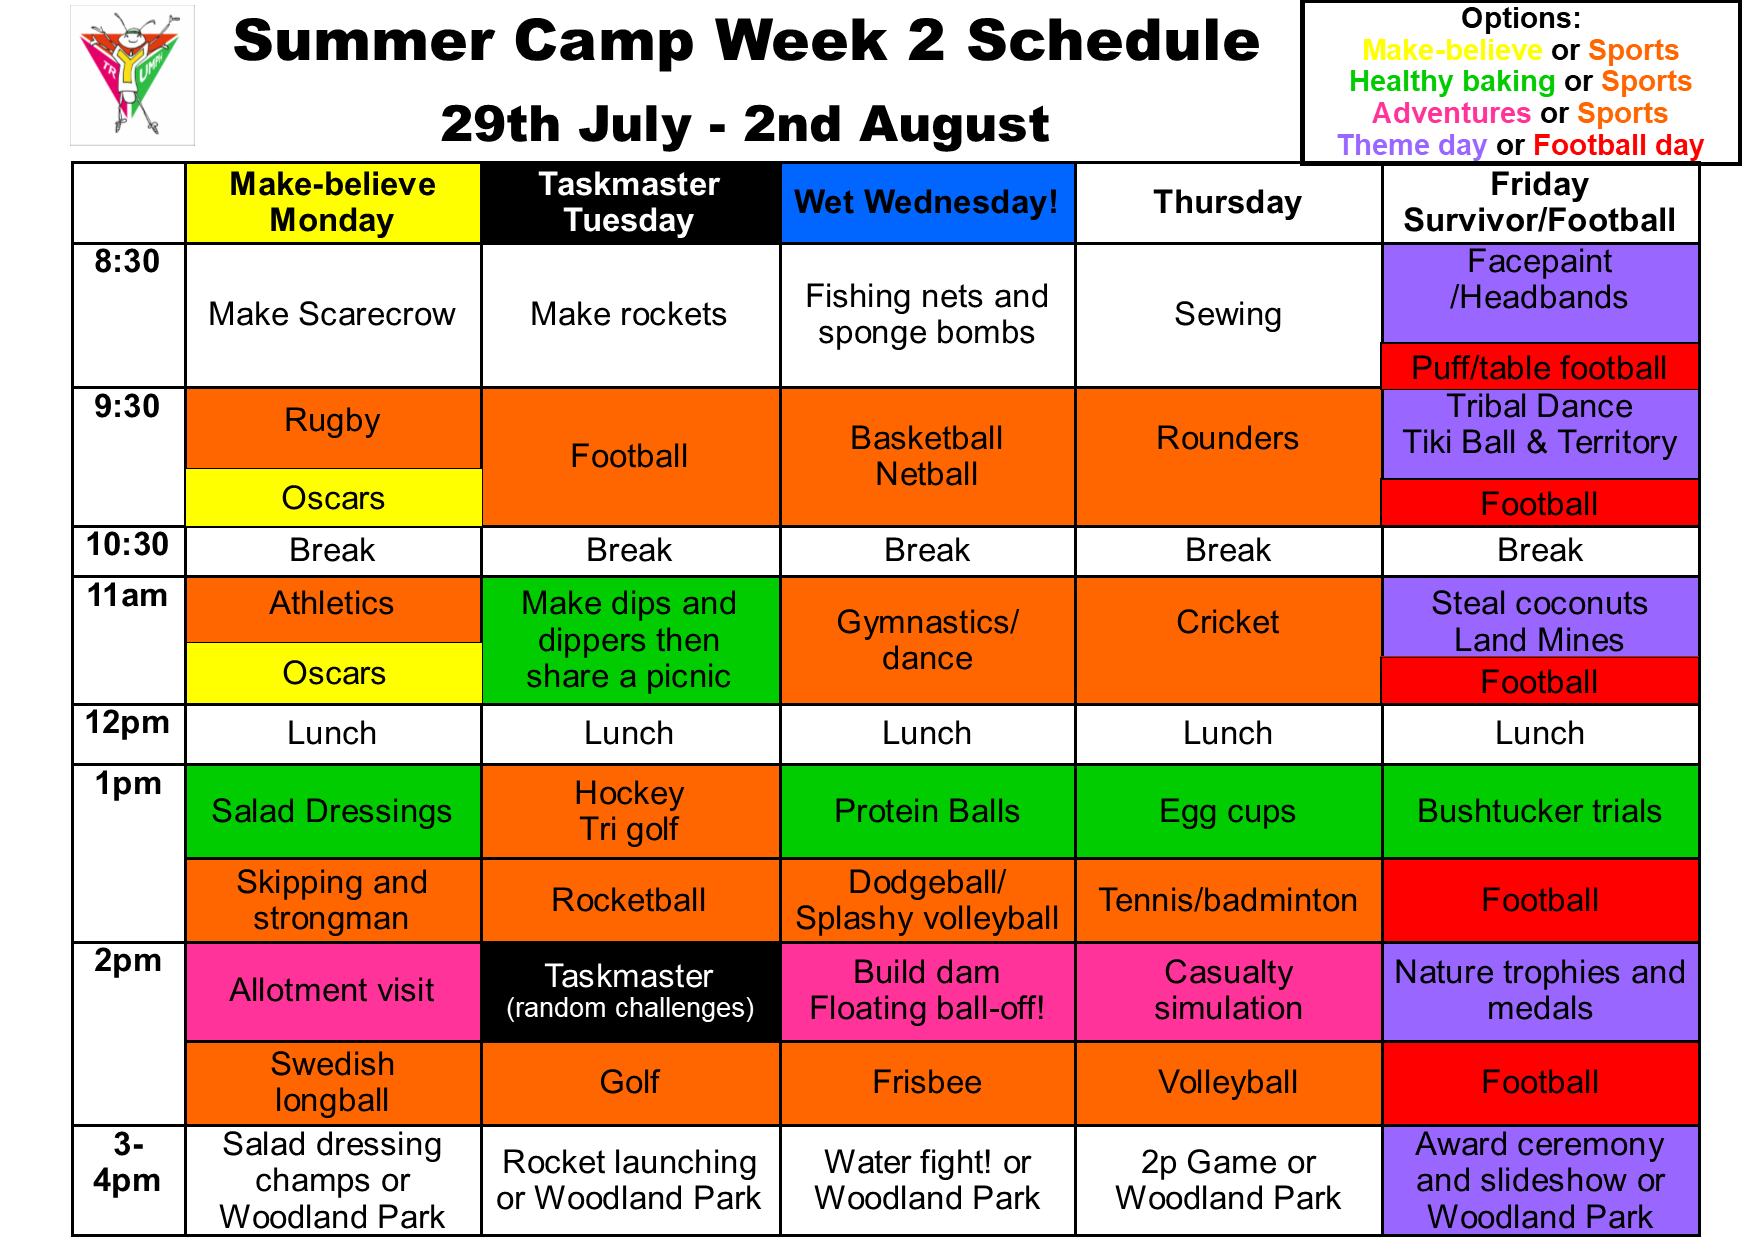 Summer camp week 2